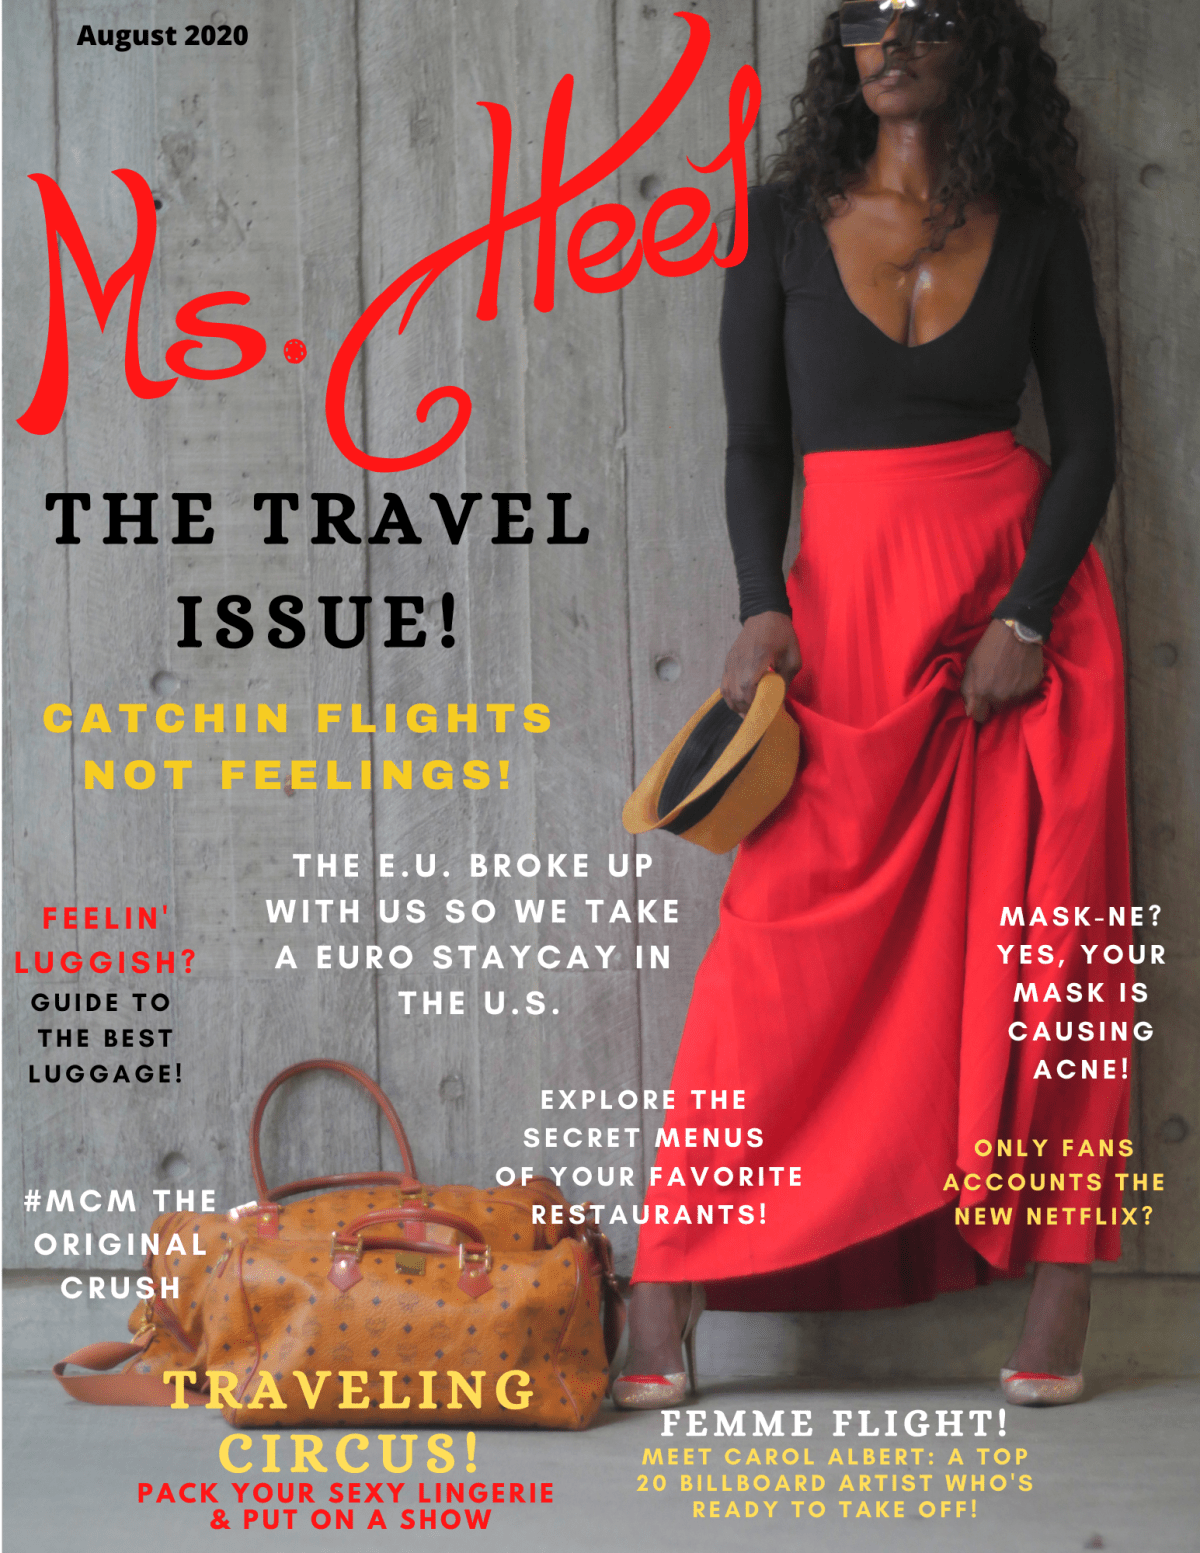 Ms. Heel Magazine..,the magazine all about high heels!